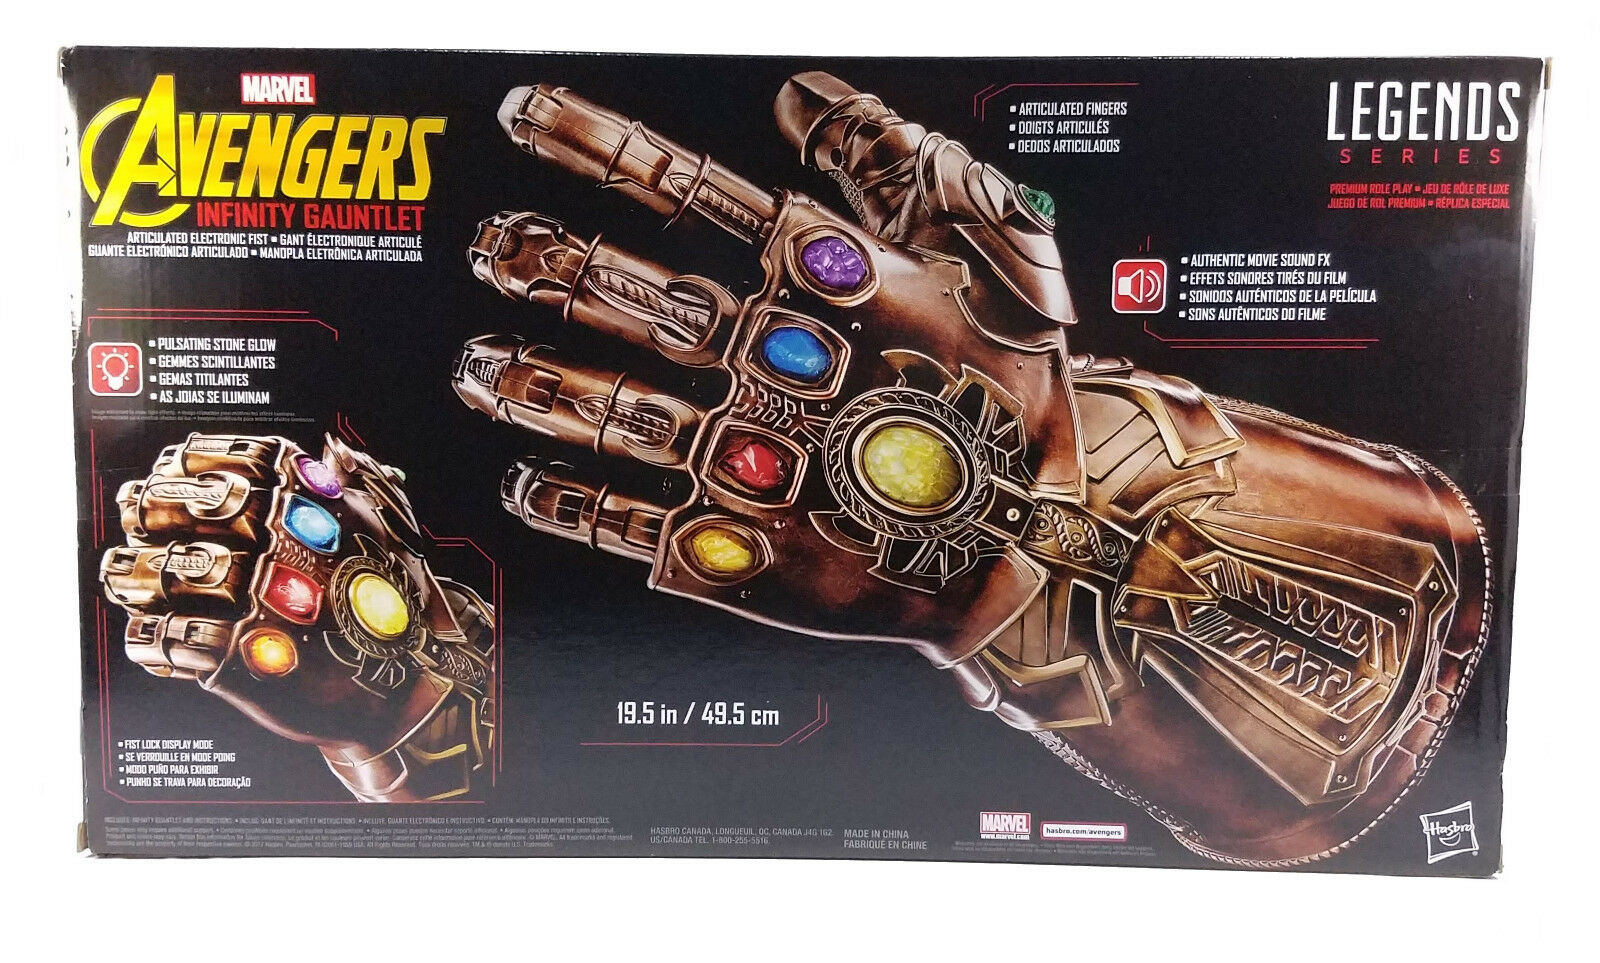 Marvel Avengers Legends Series Thanos Infinity Gauntlet Articulated  Electronic  garantito